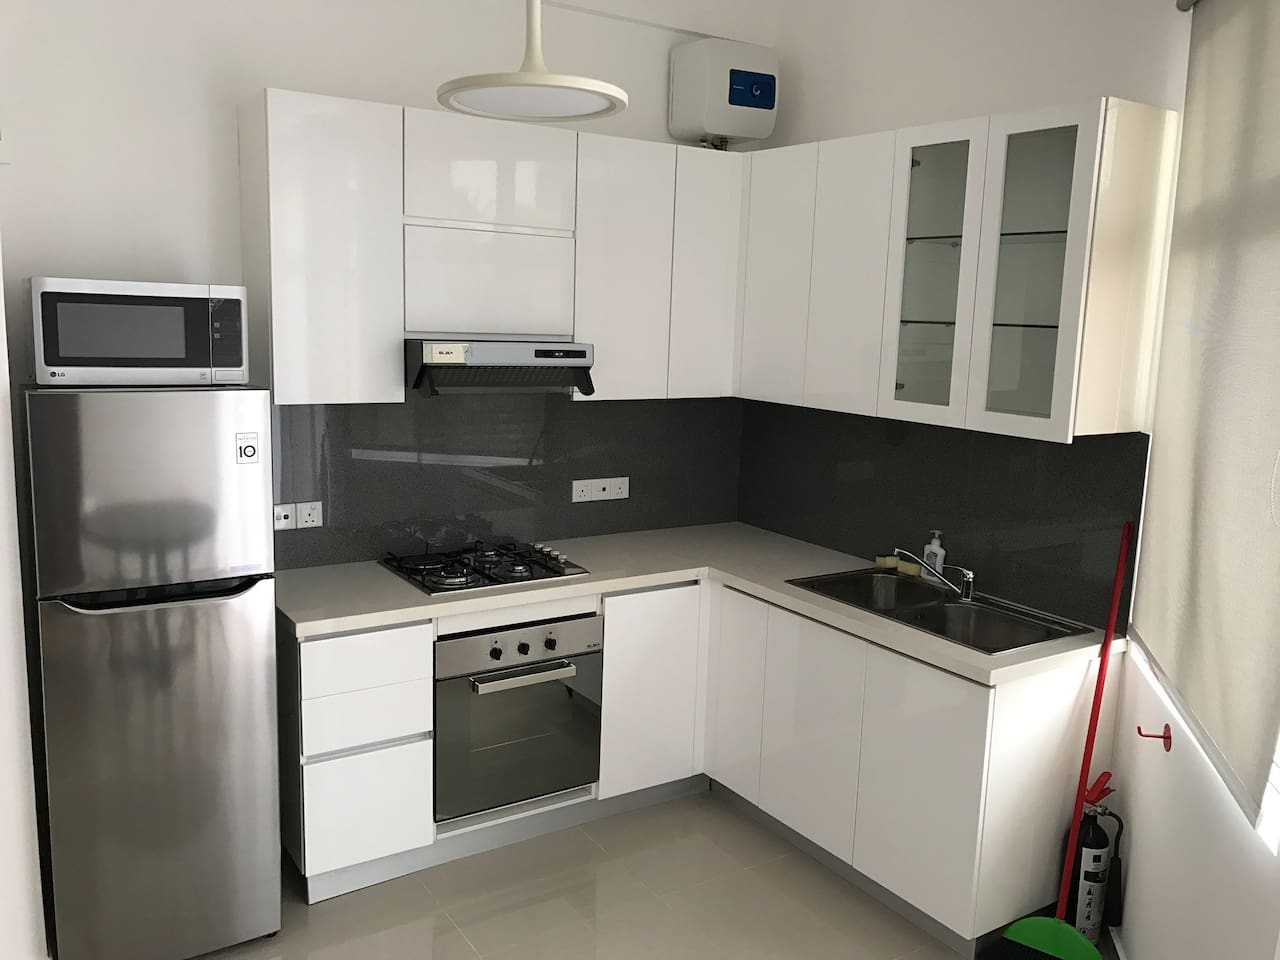 Pantry area with refrigerator, 4 gas burners, full electric oven and heater and the microwave oven